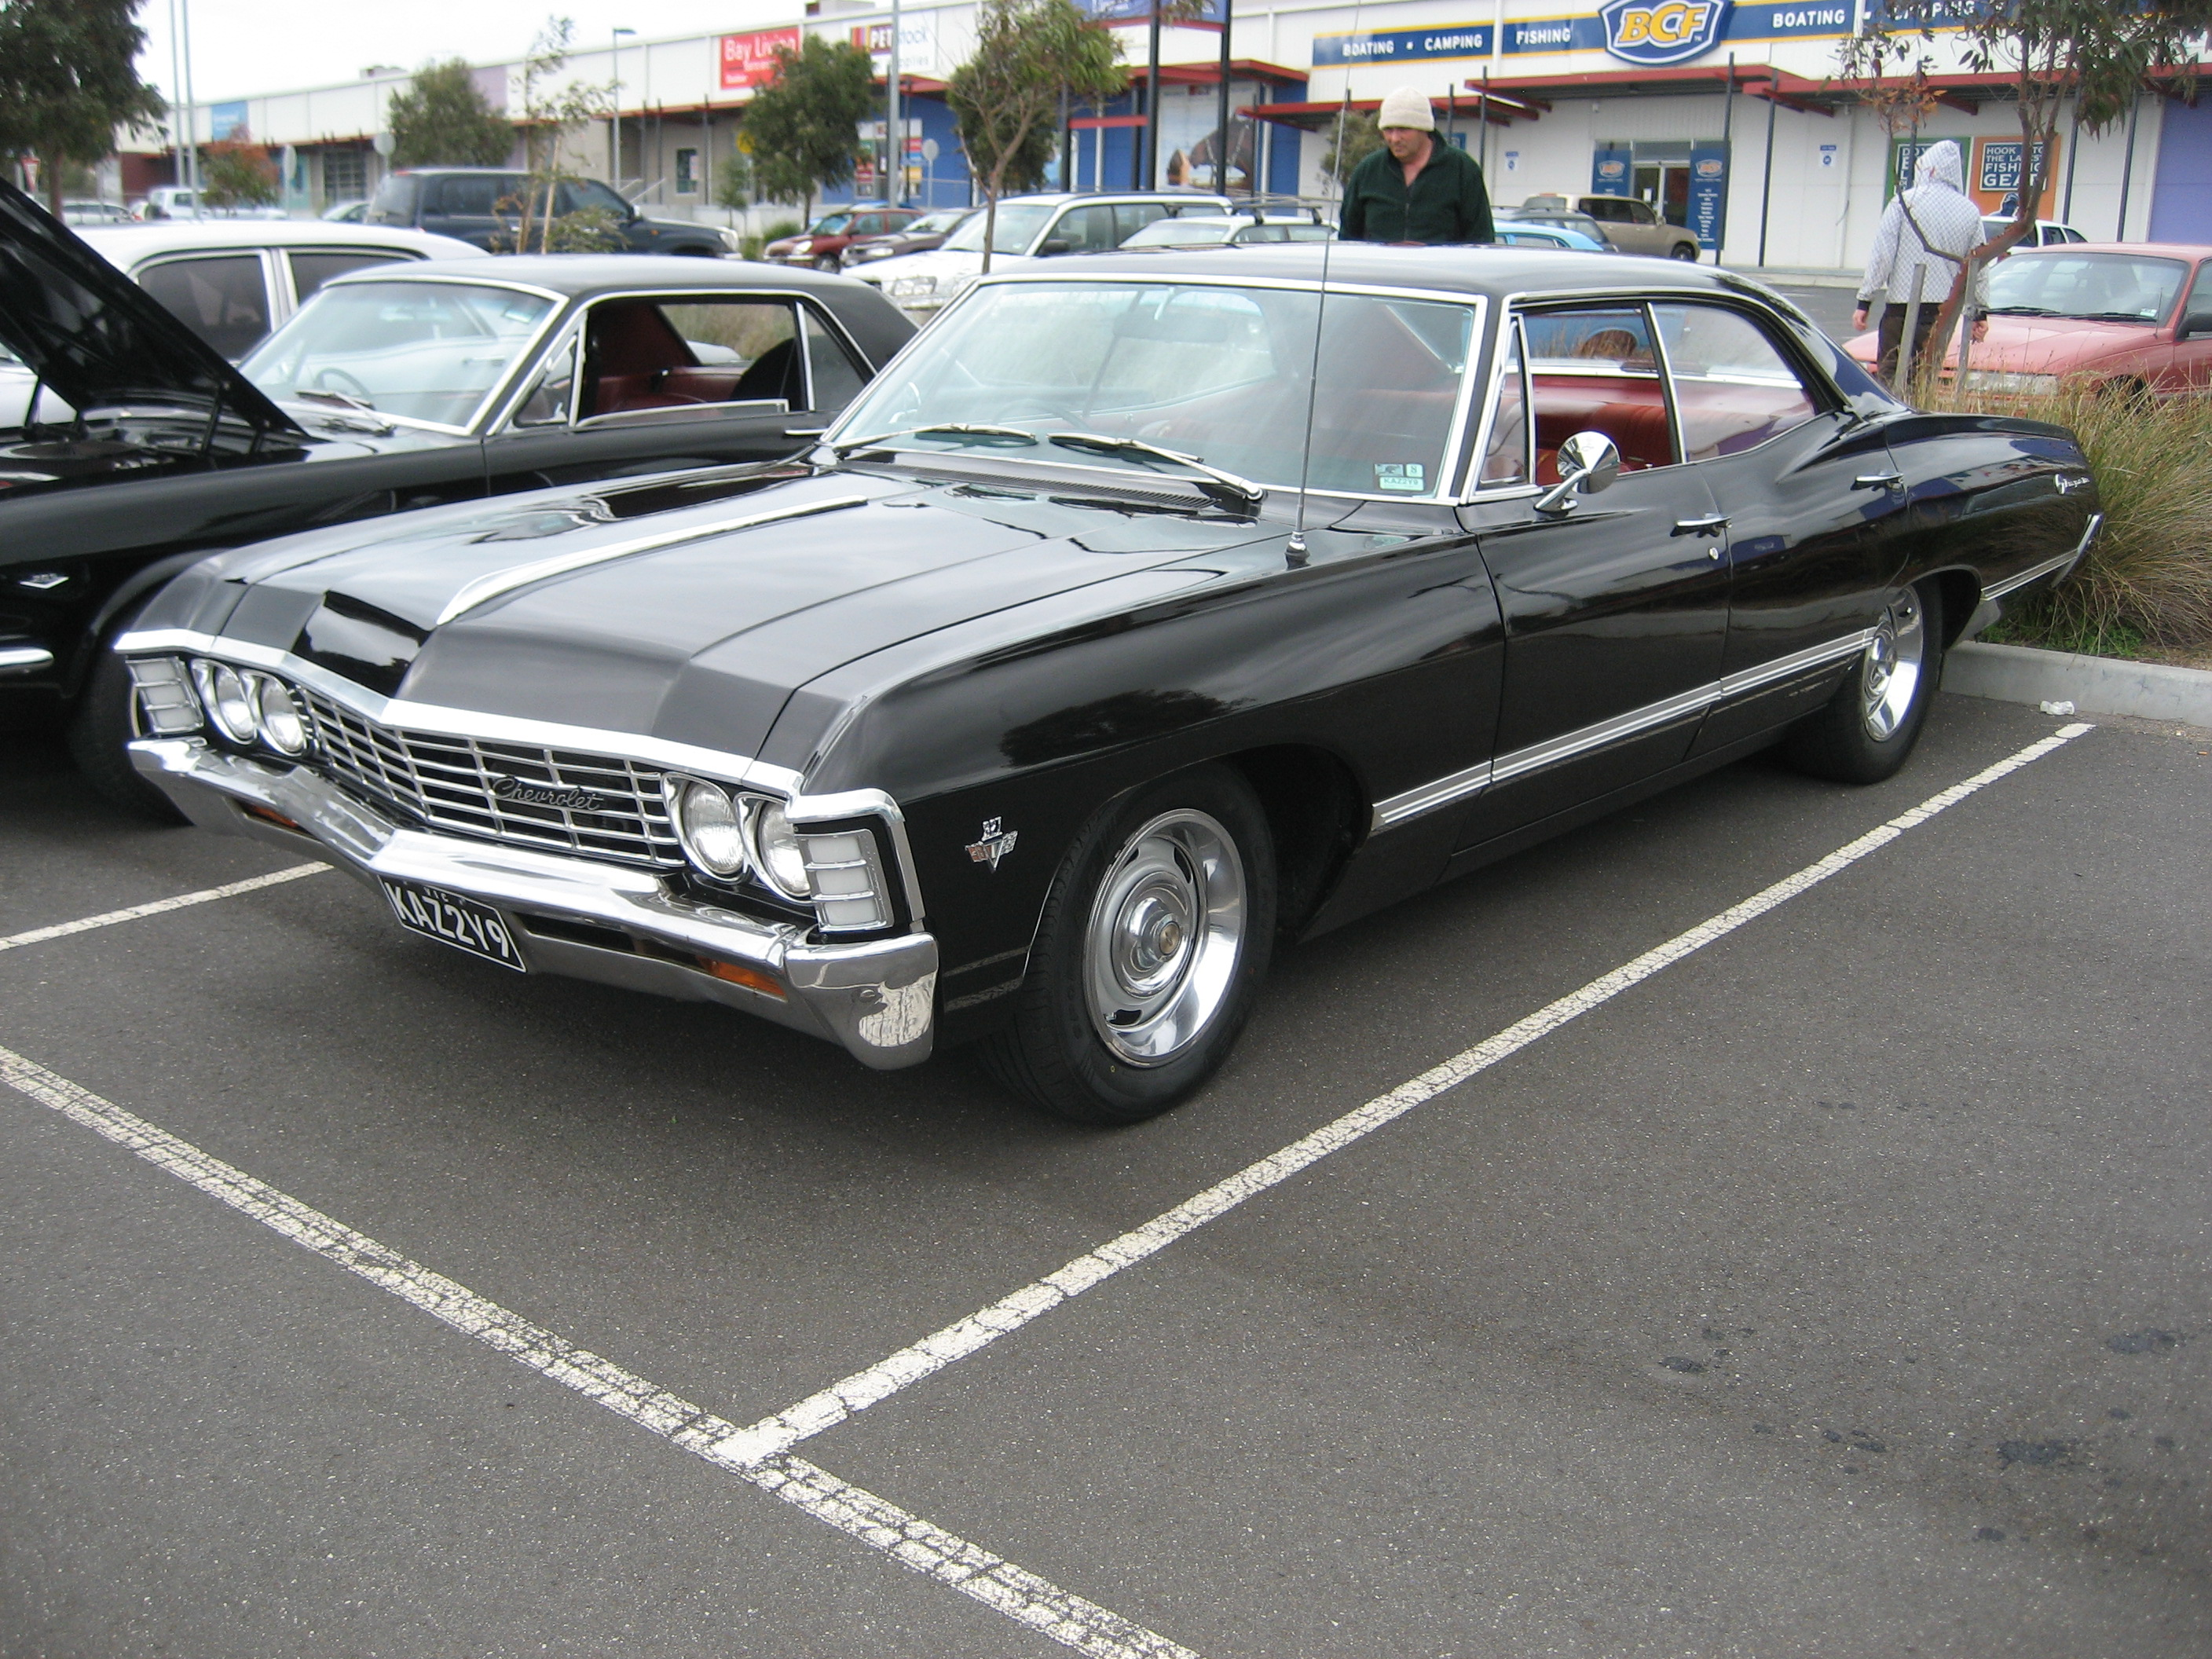 Description 1967 Chevrolet Impala 4 door Hardtop.jpg